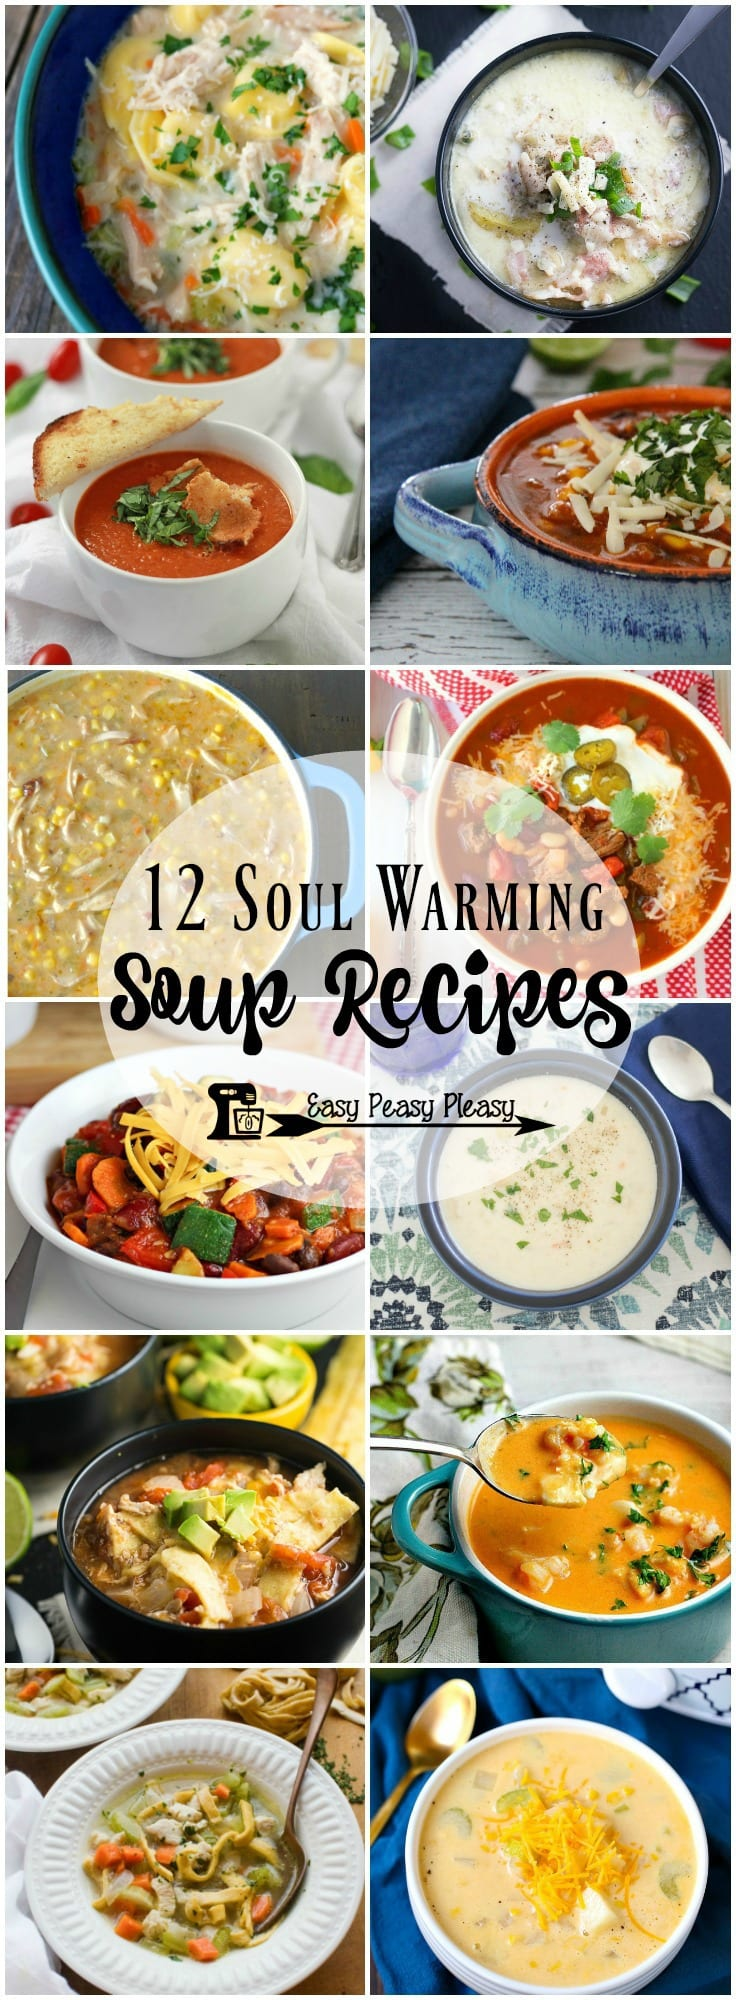 12 Easy Soup Recipes that will warm your soul and your tummy!